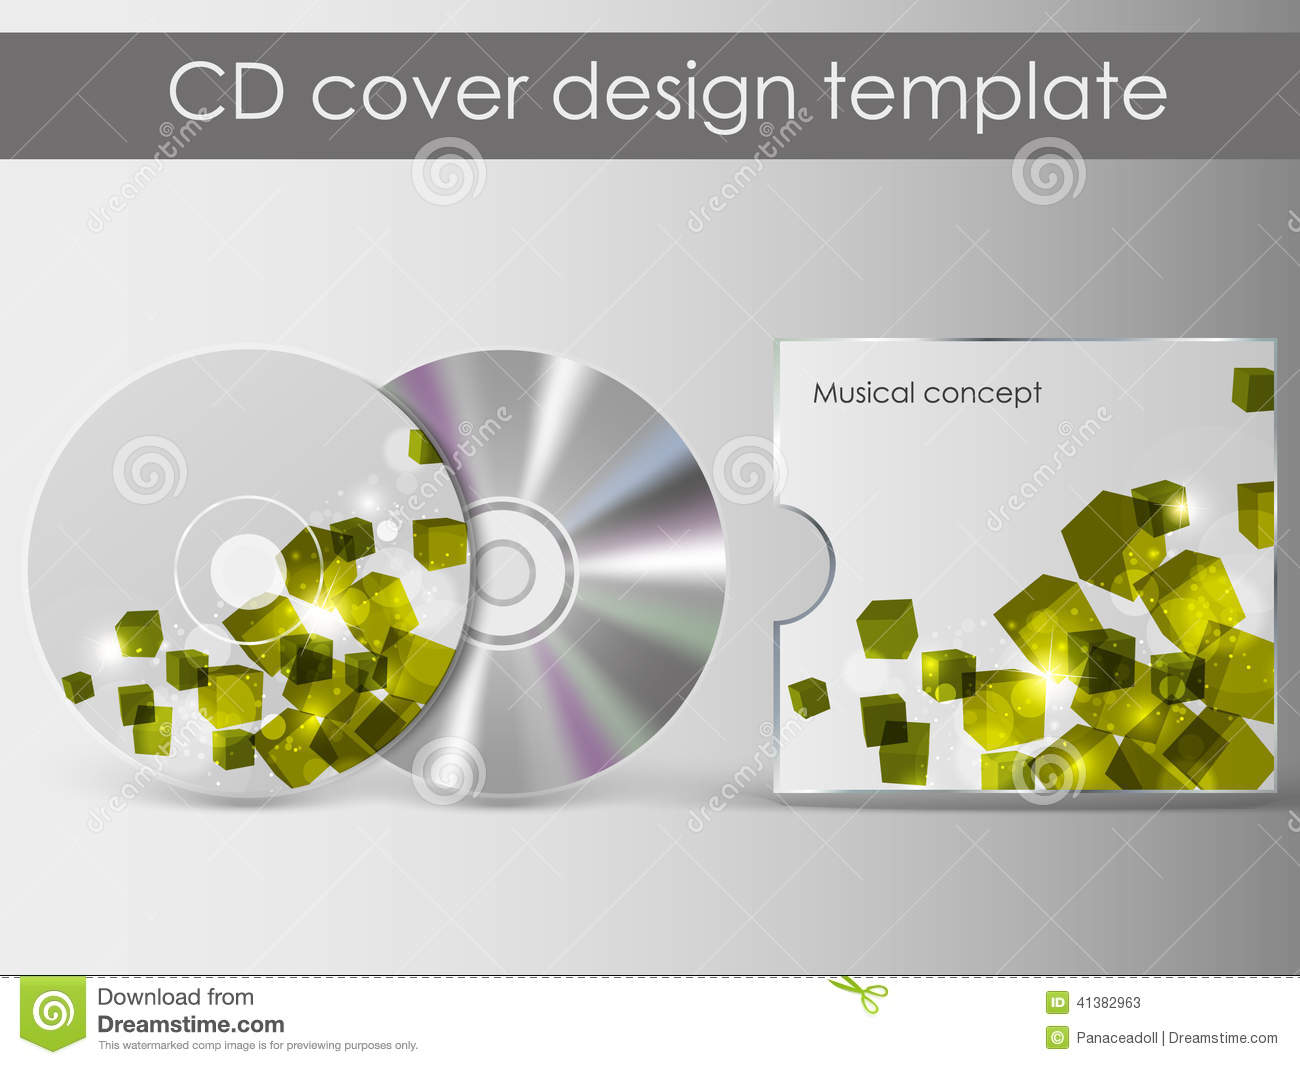 cd cover presentation design template stock vector image 41382963. Black Bedroom Furniture Sets. Home Design Ideas